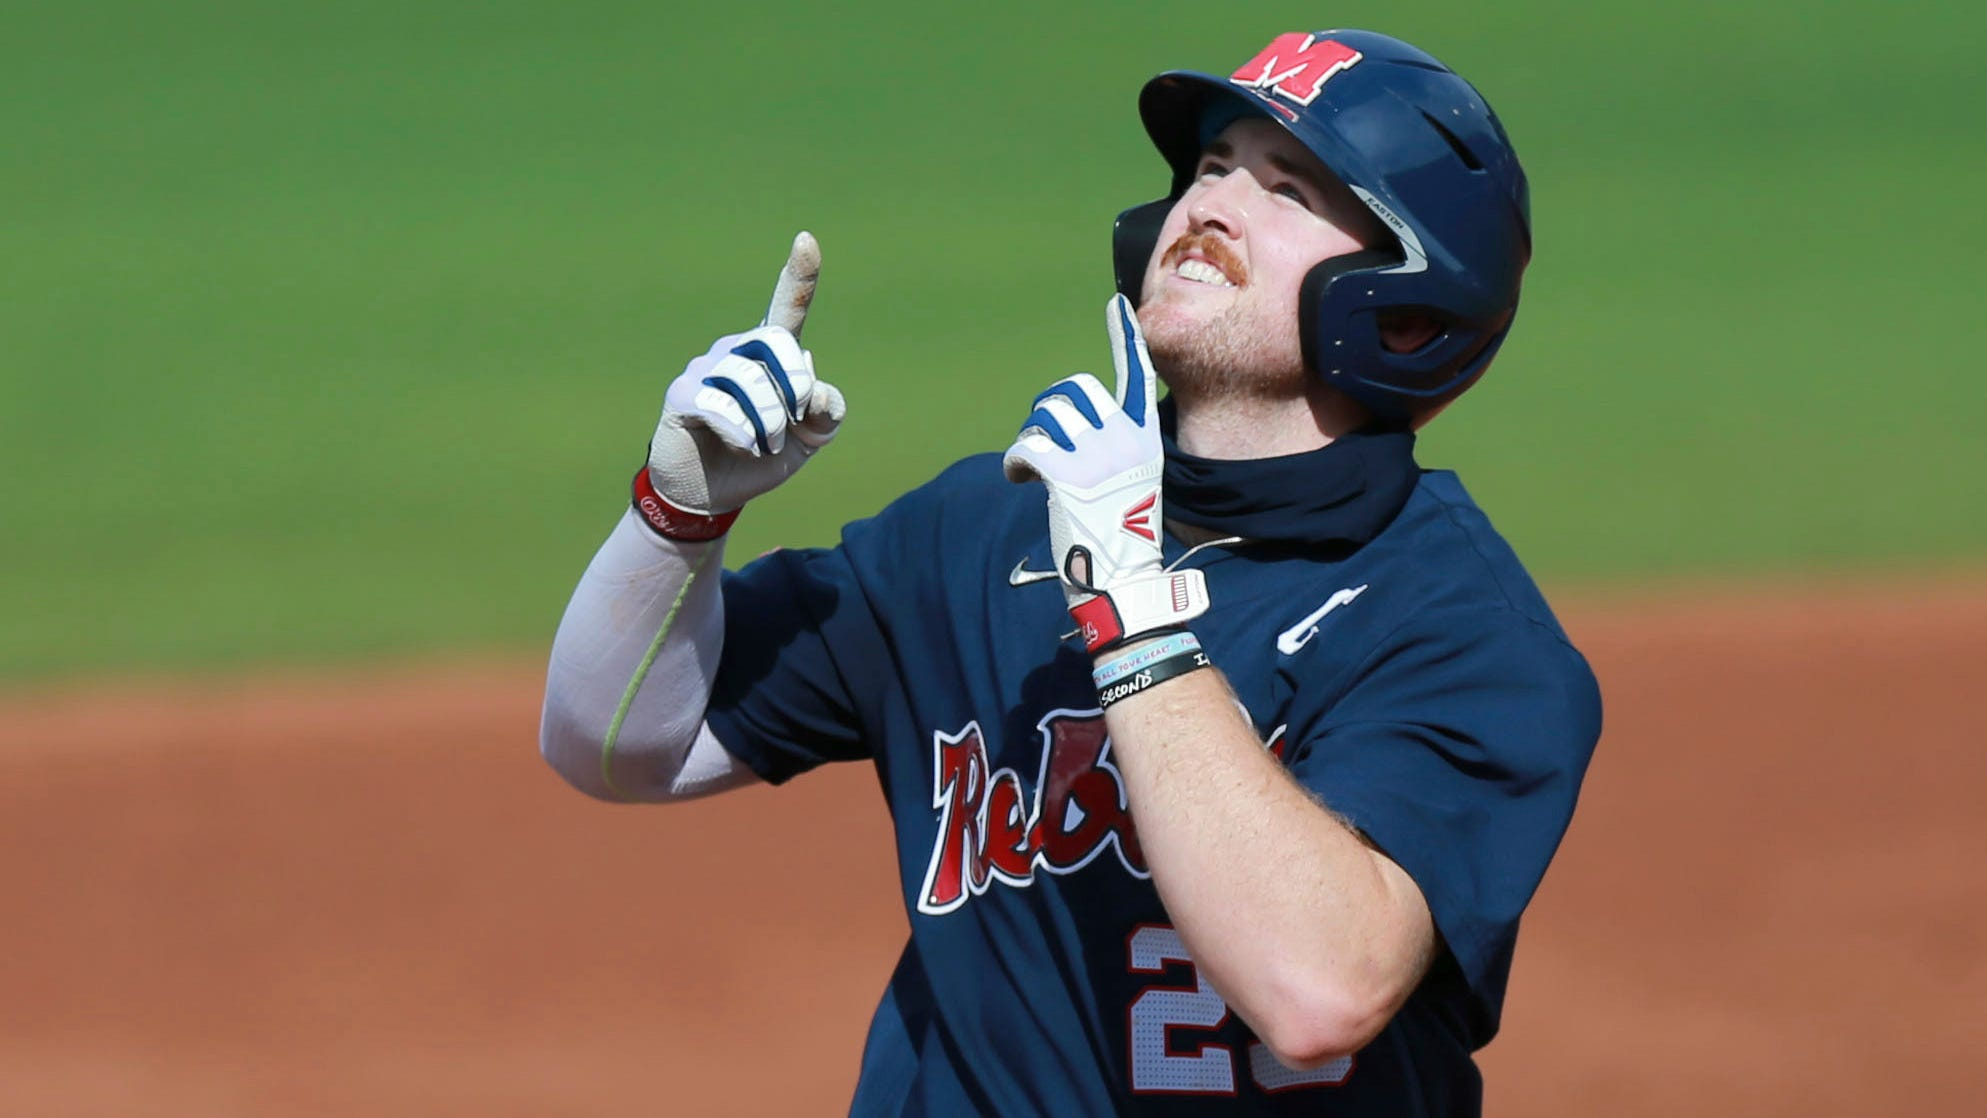 How to watch Ole Miss vs. Arizona baseball on TV, live stream plus schedule, game times